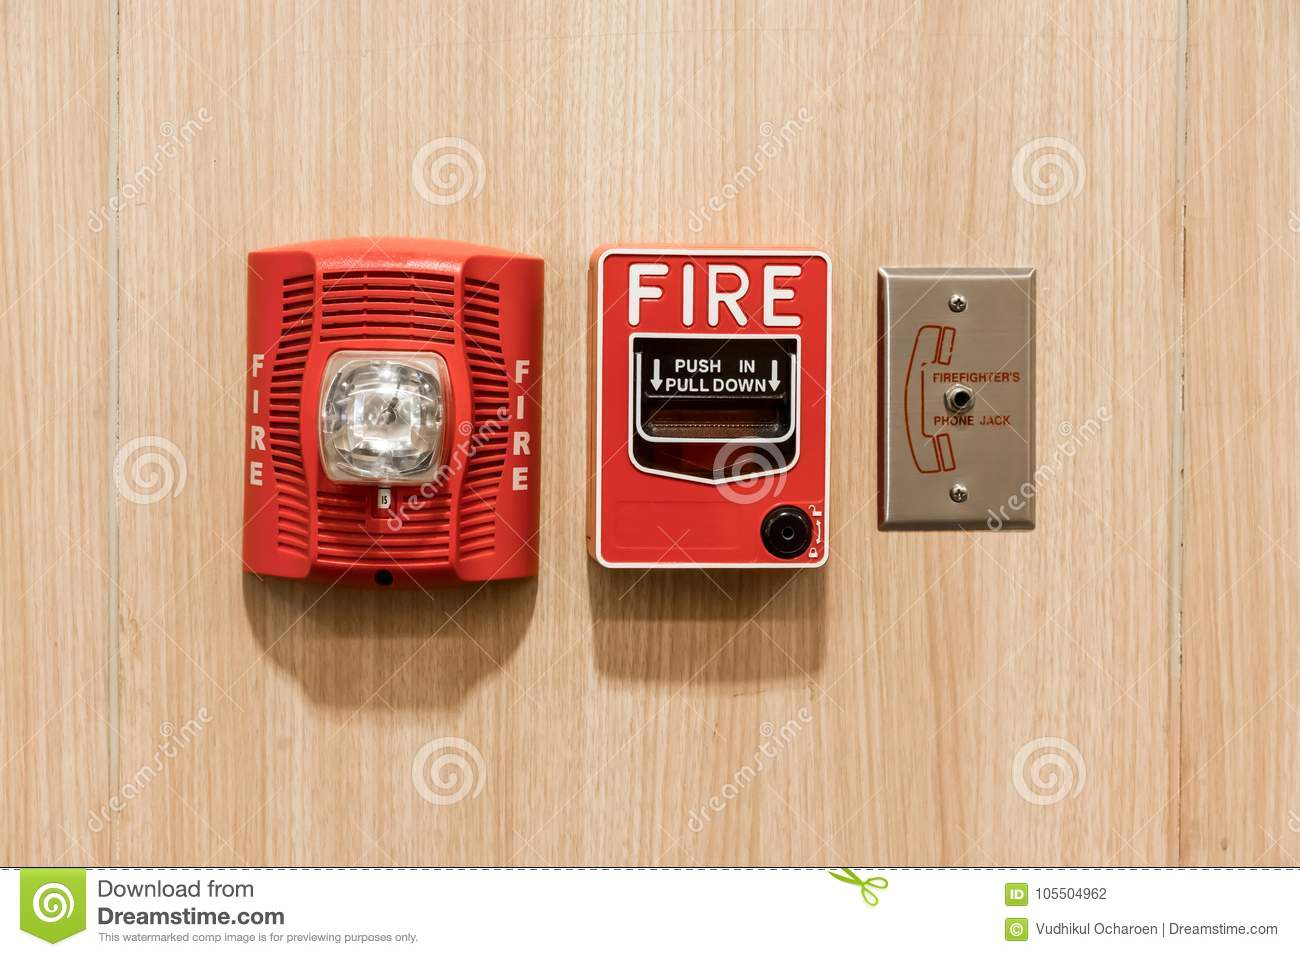 hight resolution of push in pull down switch in case of fire phone jack outlet and fire alarm lighting against wooden background